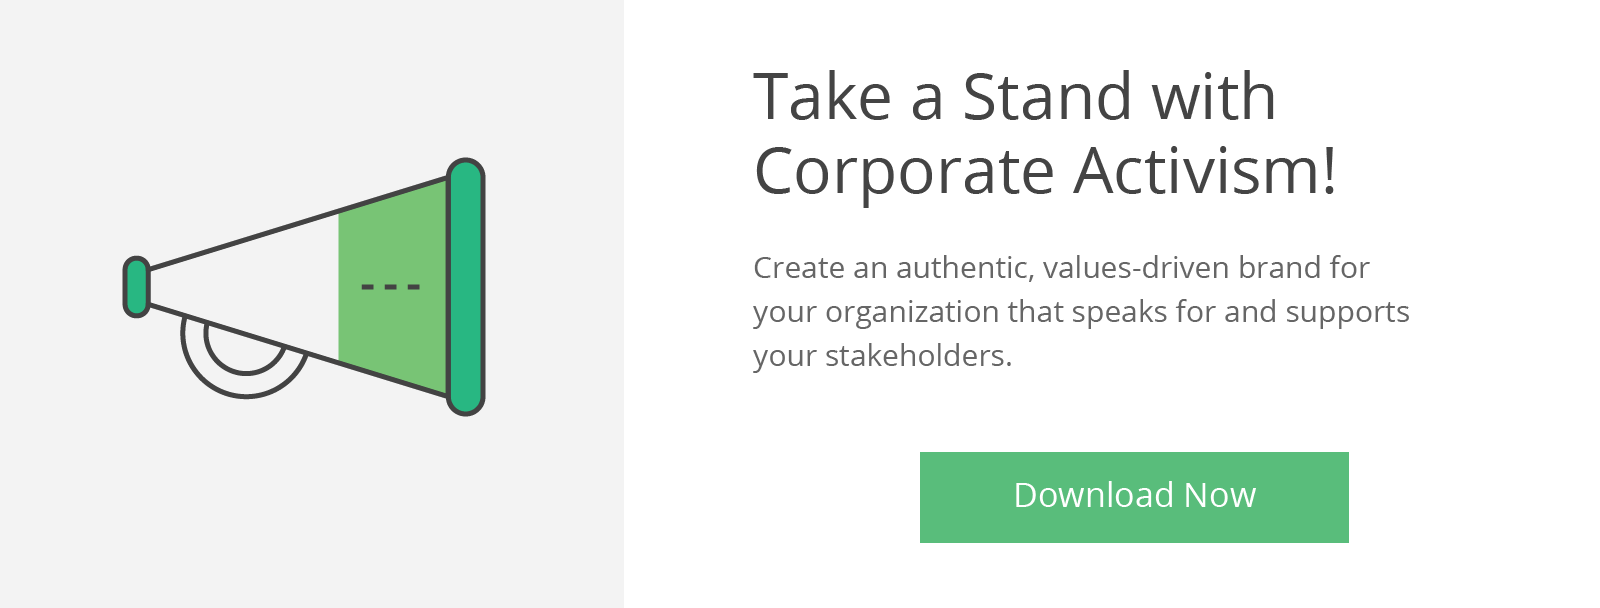 Corporate Activism, Call to Action